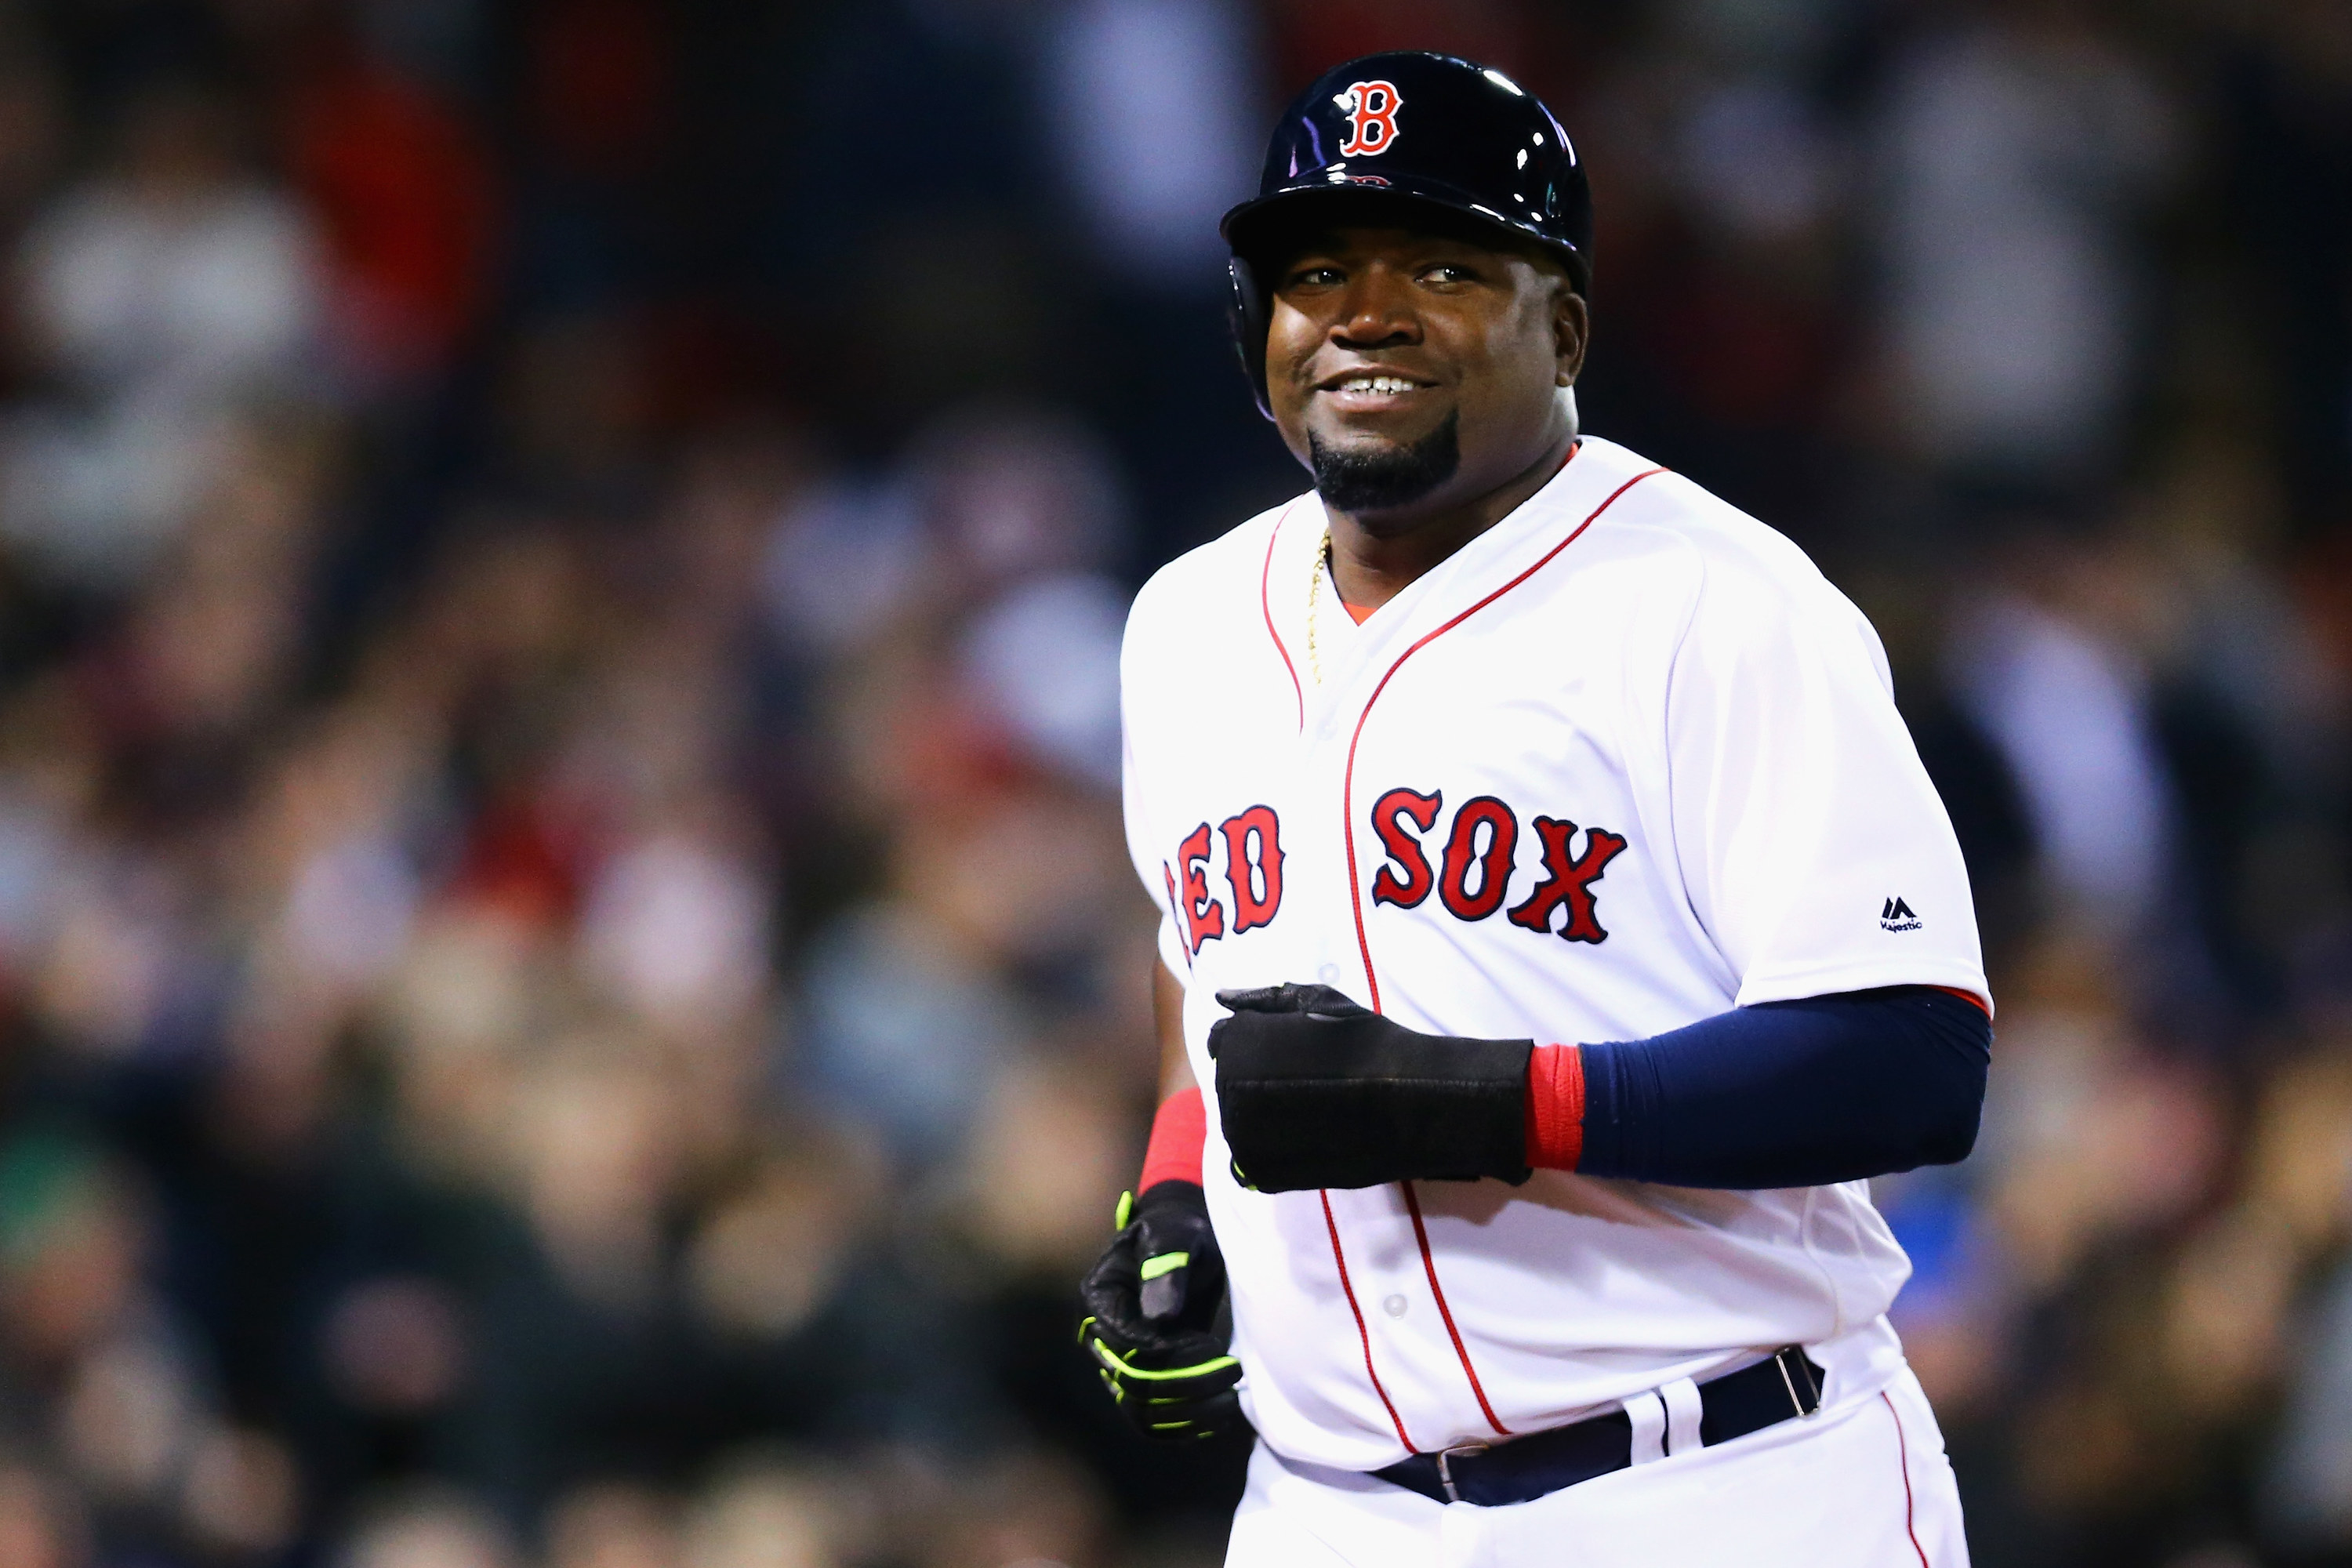 Red Sox player David Ortiz rounding the bases with a smile